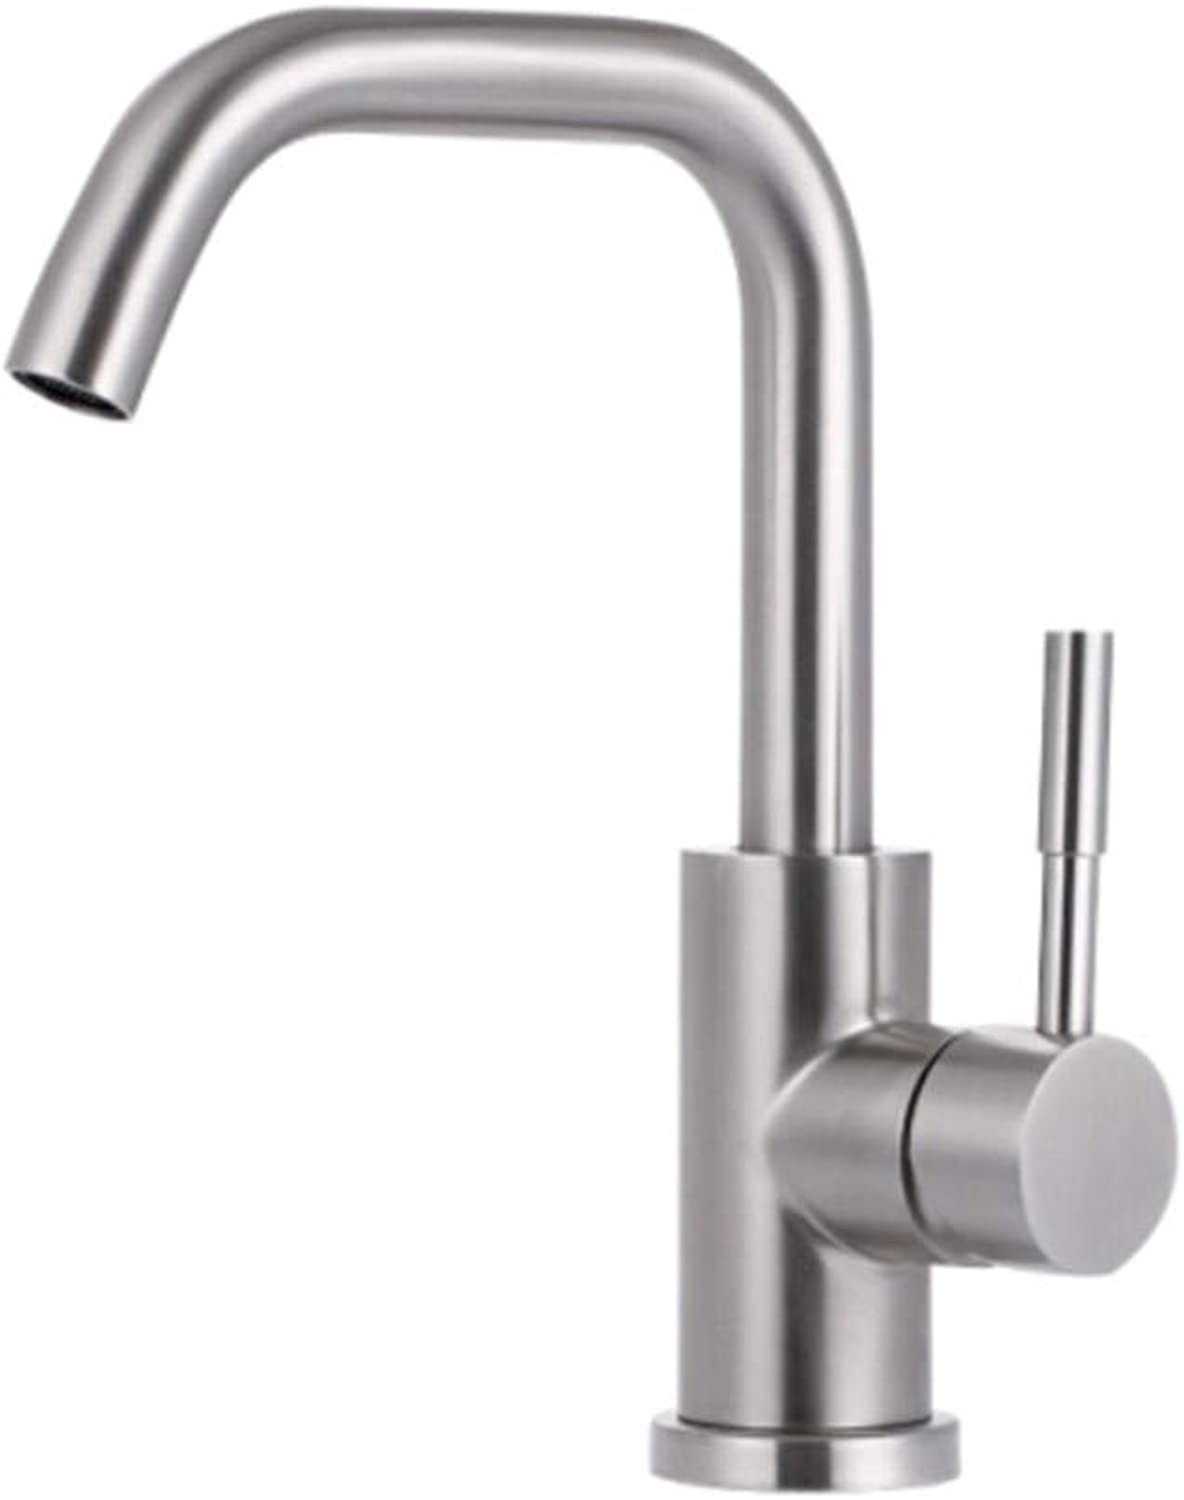 Basin Taps Swivel Spout Faucet Basin Hot and Cold Water Faucet 304 Stainless Steel Table Basin Faucet Single Hole Washbasin Faucet